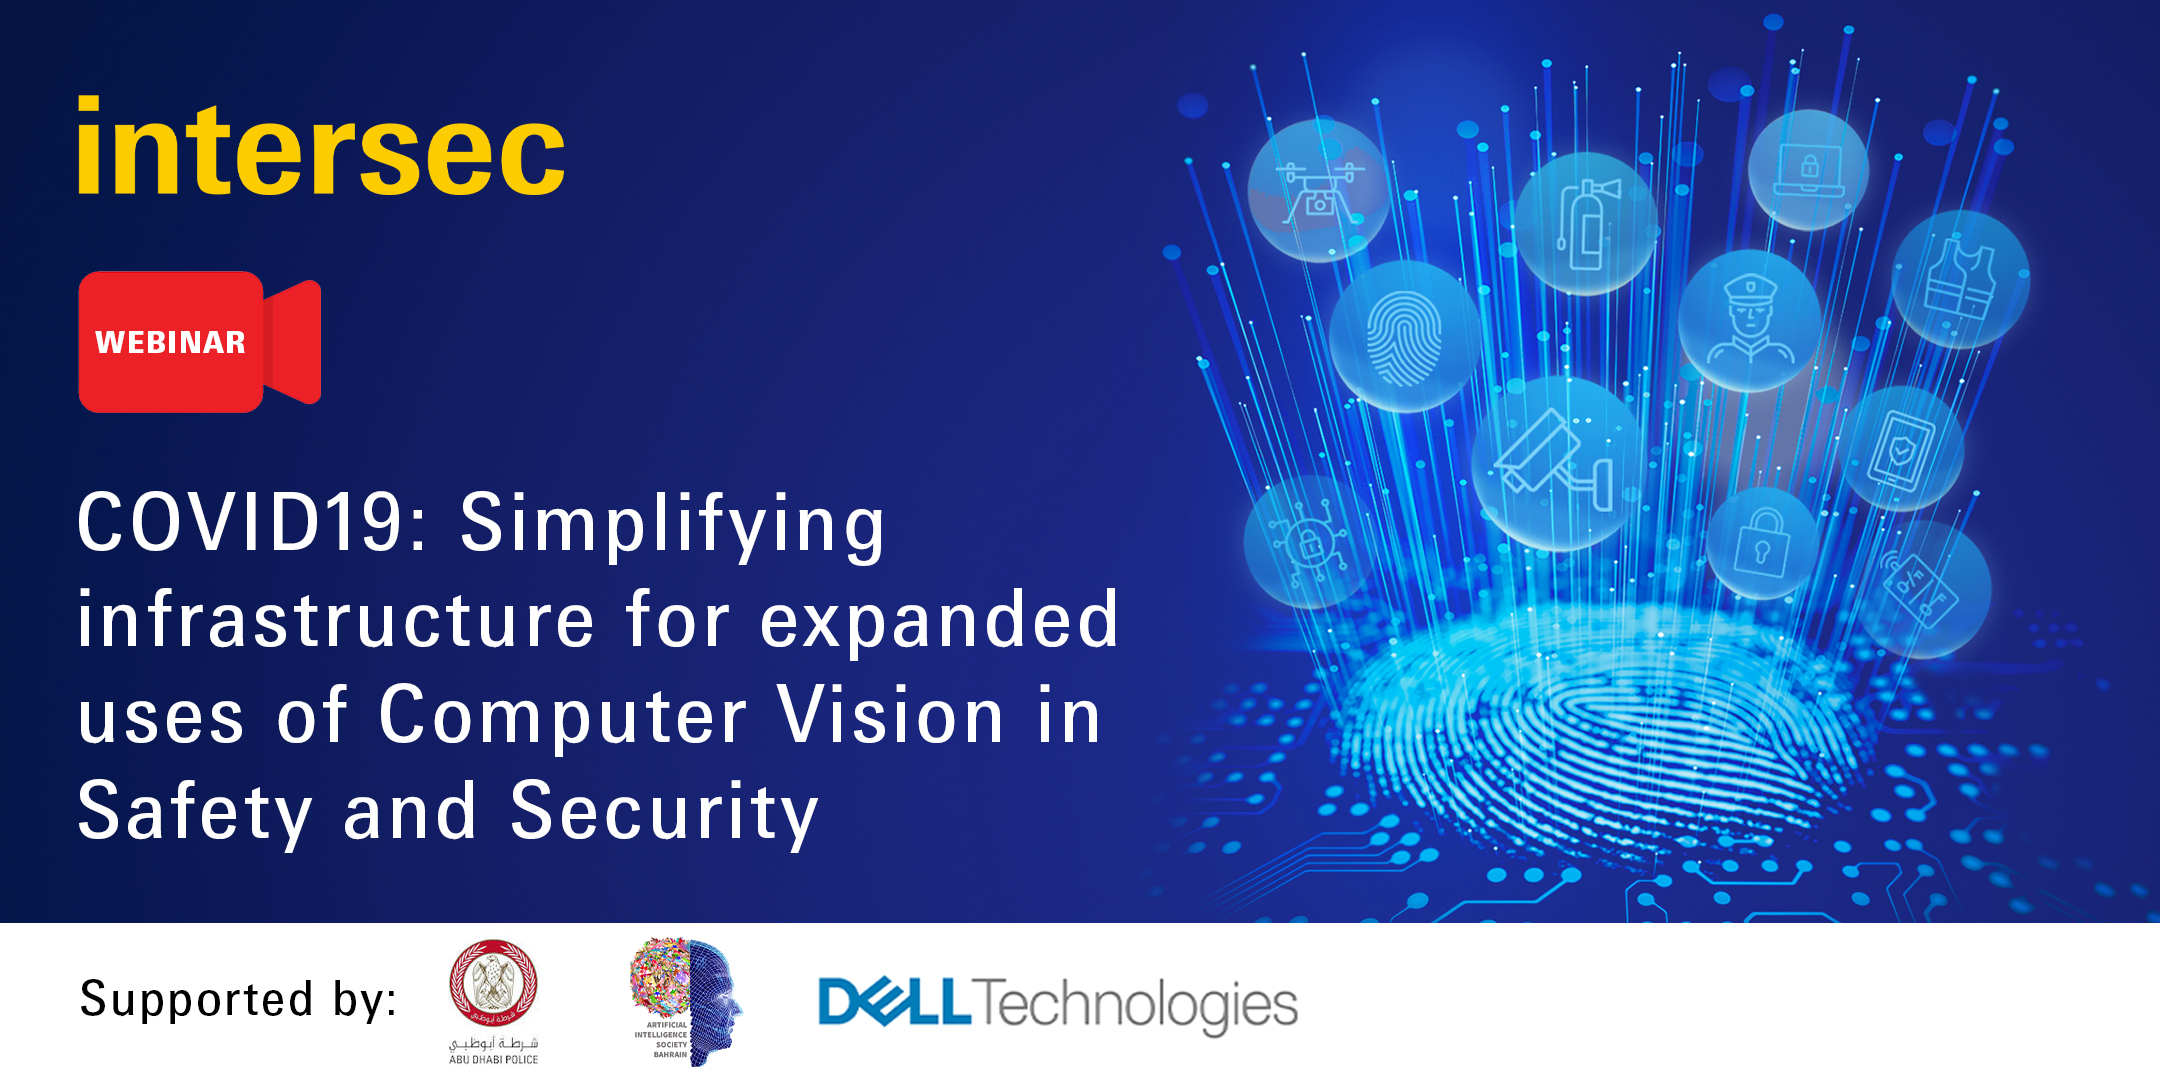 COVID19: Simplifying infrastructure for expanded uses of Computer Vision in Safety and Security